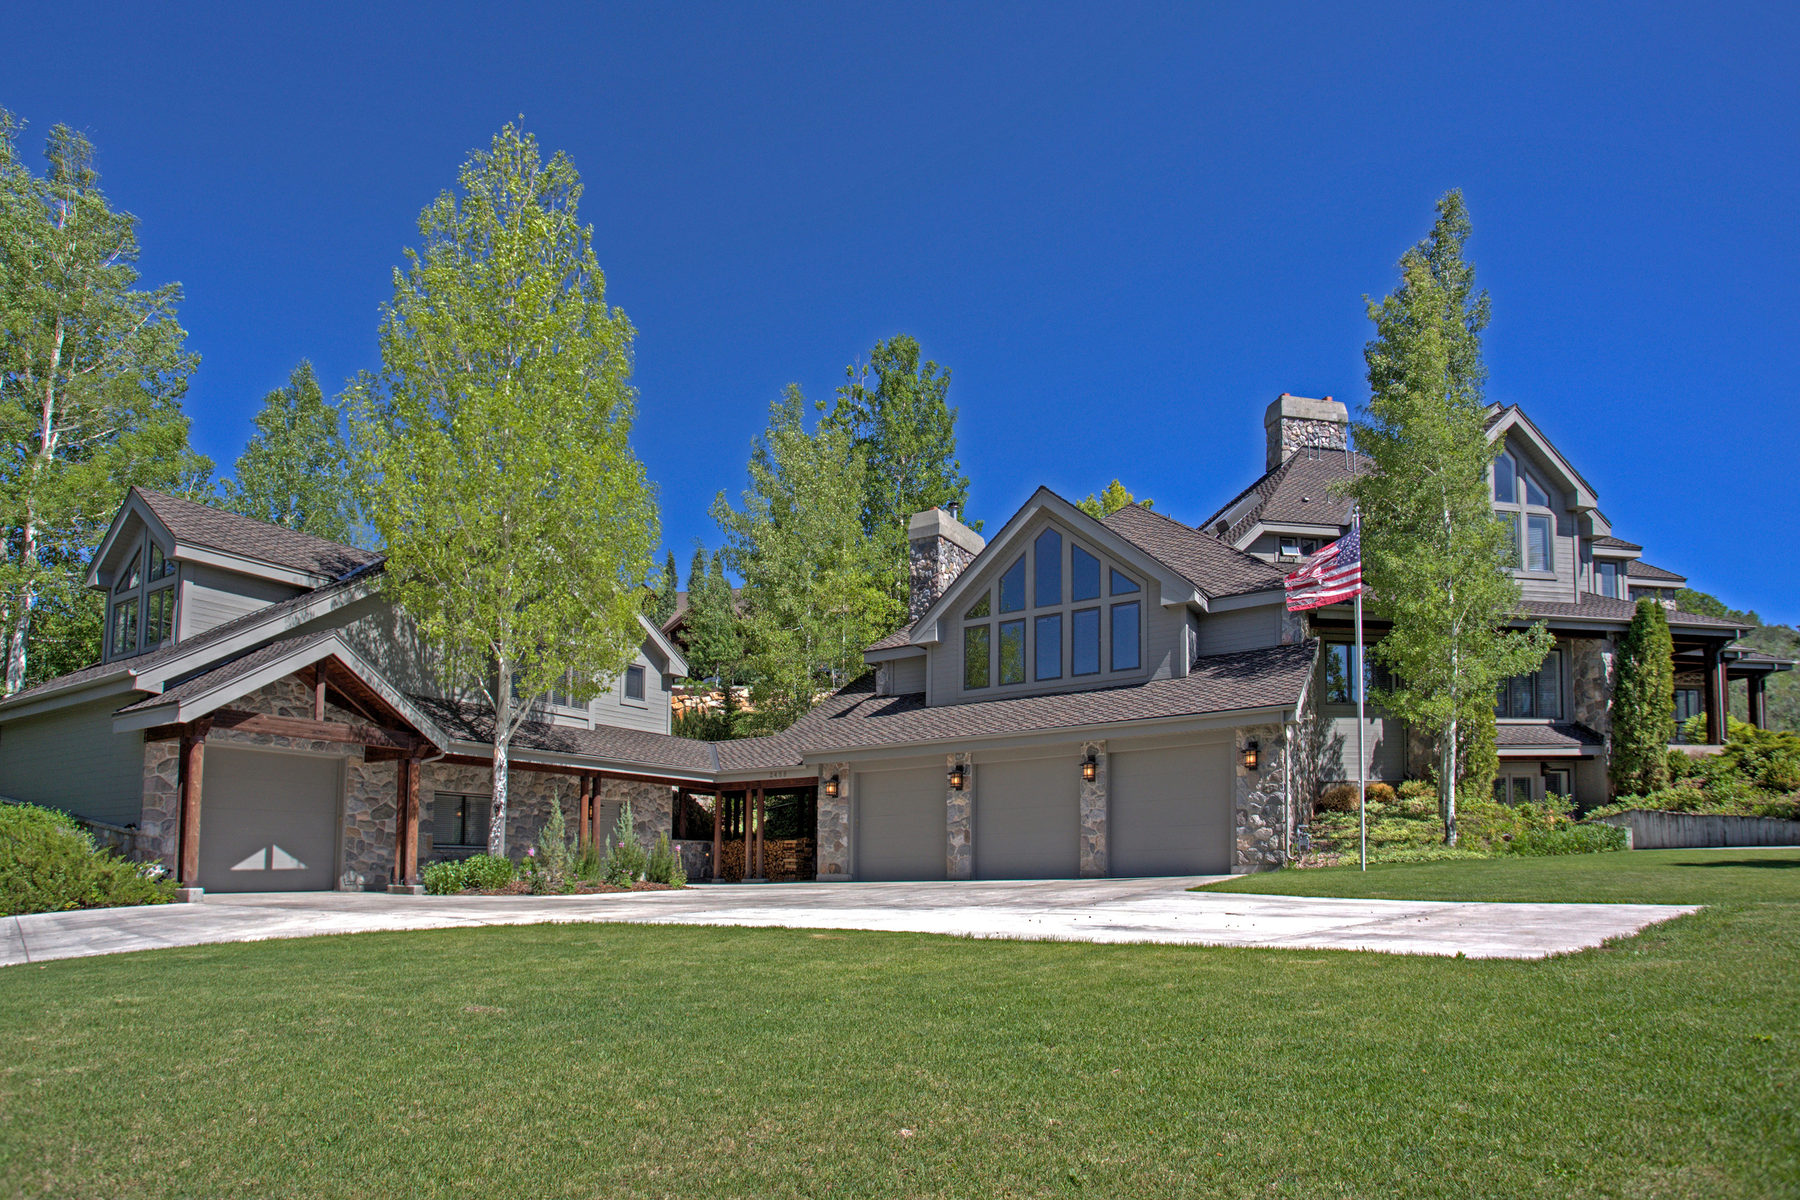 Single Family Home for Sale at Ultimate family retreat with guest home on nearly four acres. 2458 Silver Cloud Dr Park City, Utah 84060 United States